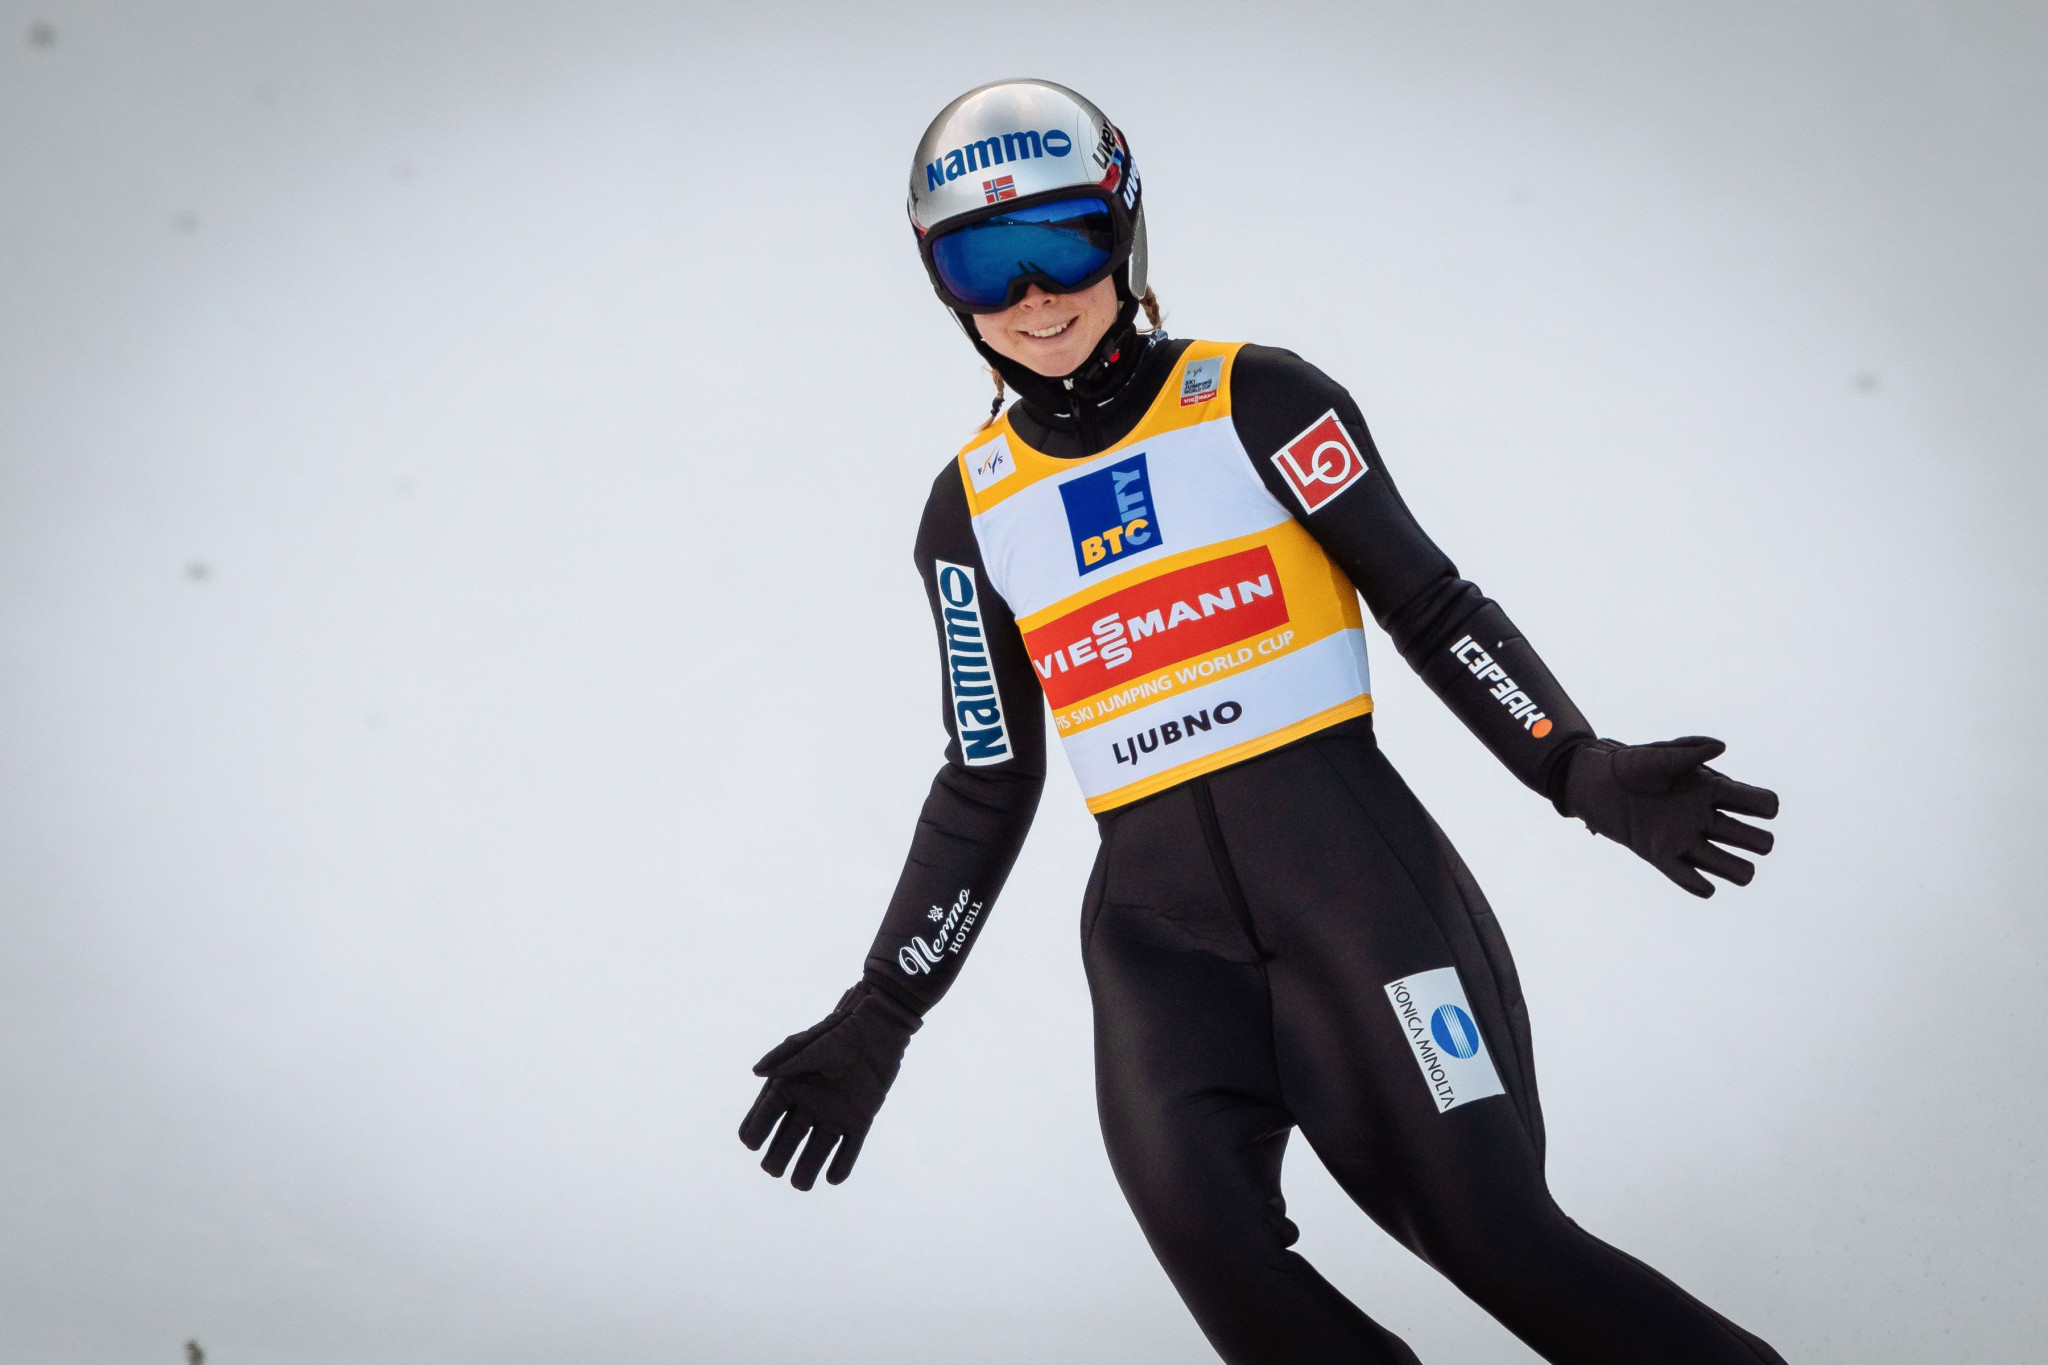 Norway's Maren Lundby will aim to add world gold to her Olympic ski jumping title ©Getty Images